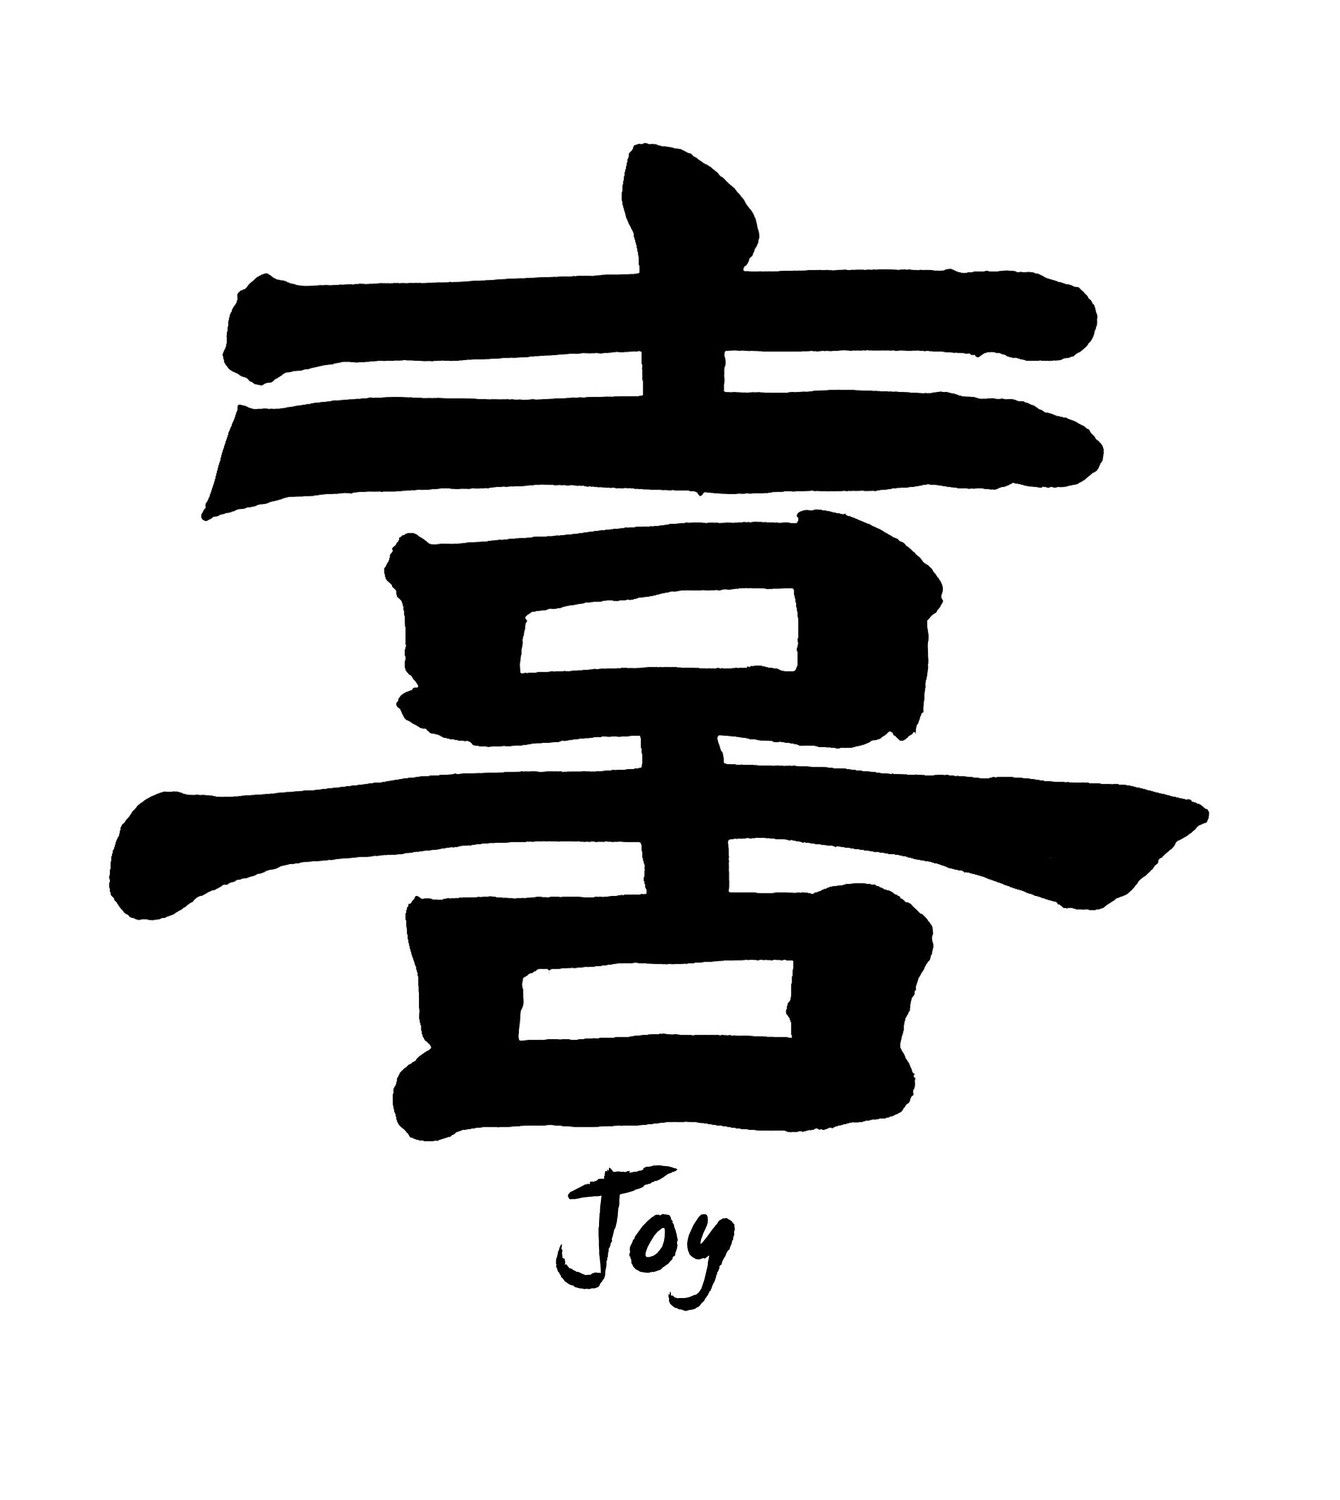 how to write joy in chinese